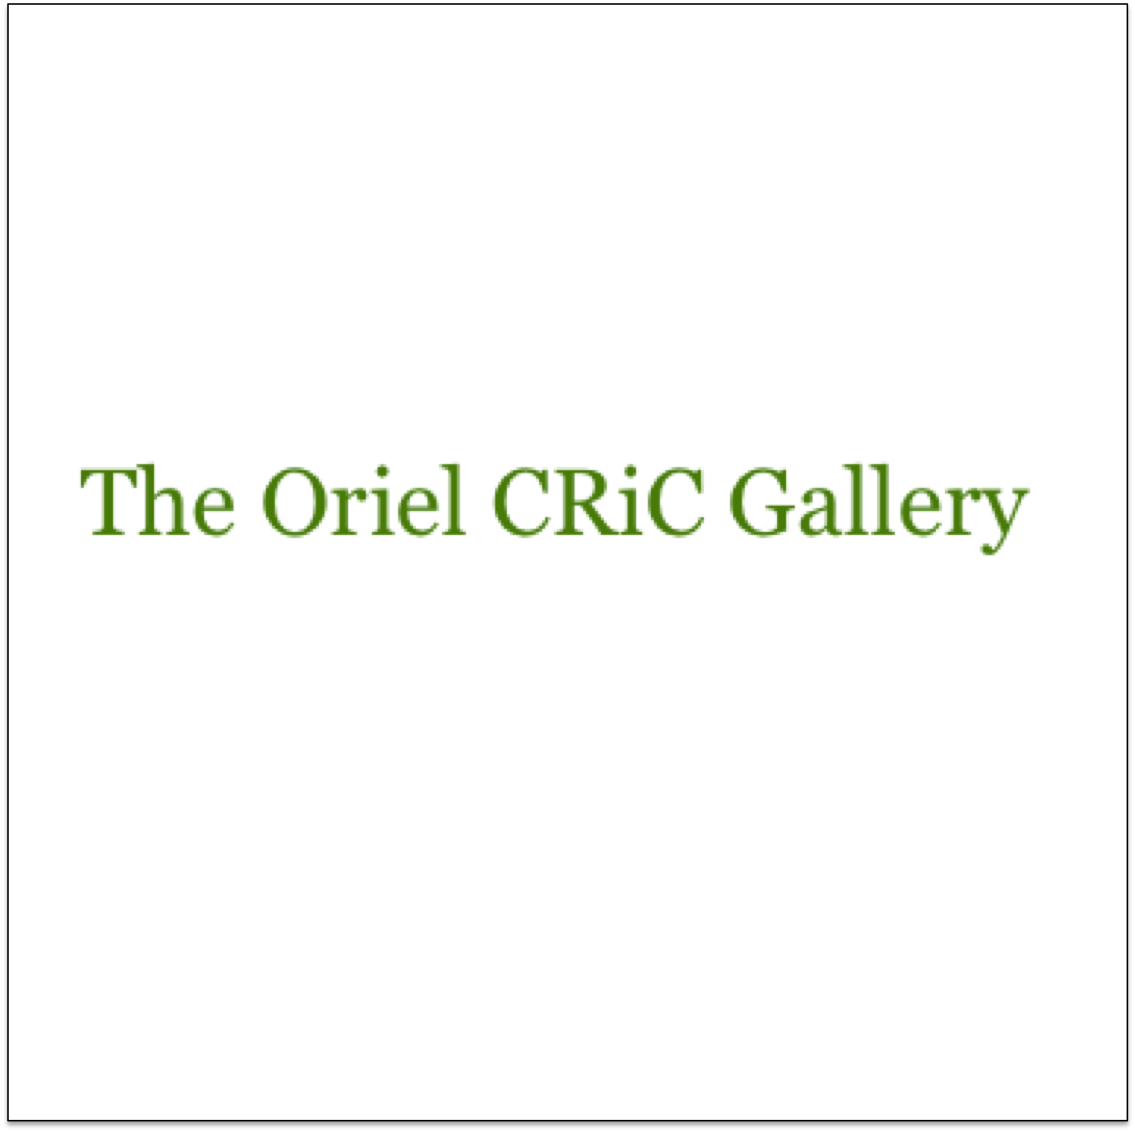 The Oriel CRiC Gallery  Crickhowell, Powys, Wales